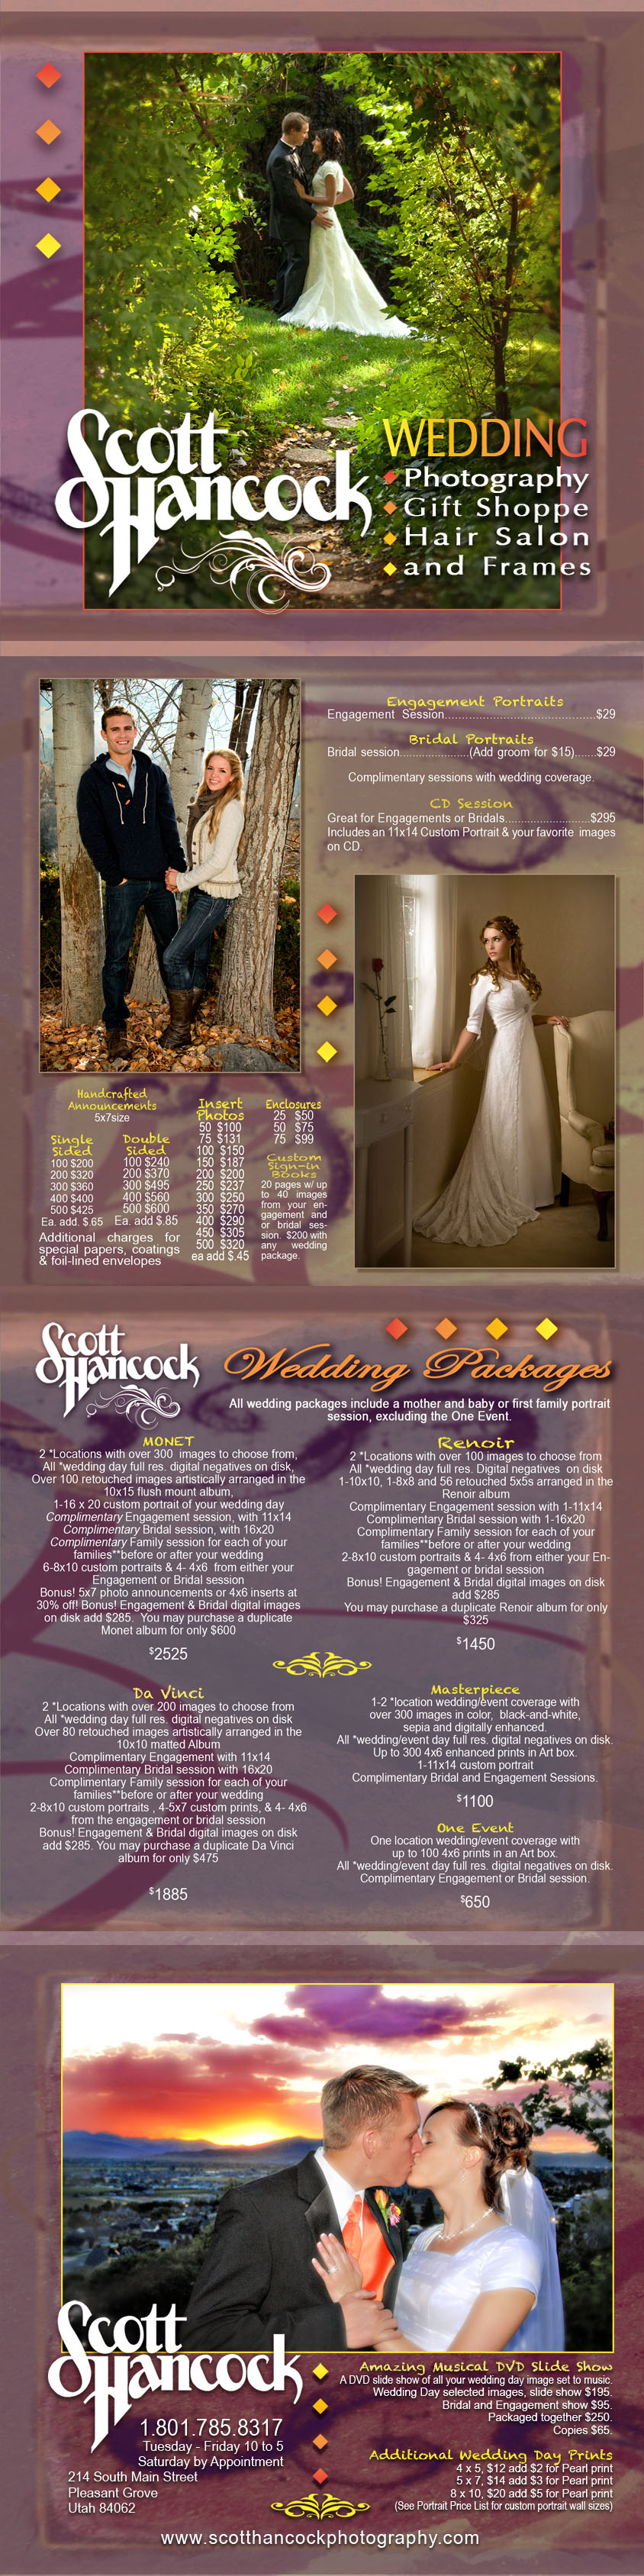 Wedding Prices | Scott Hancock Photography